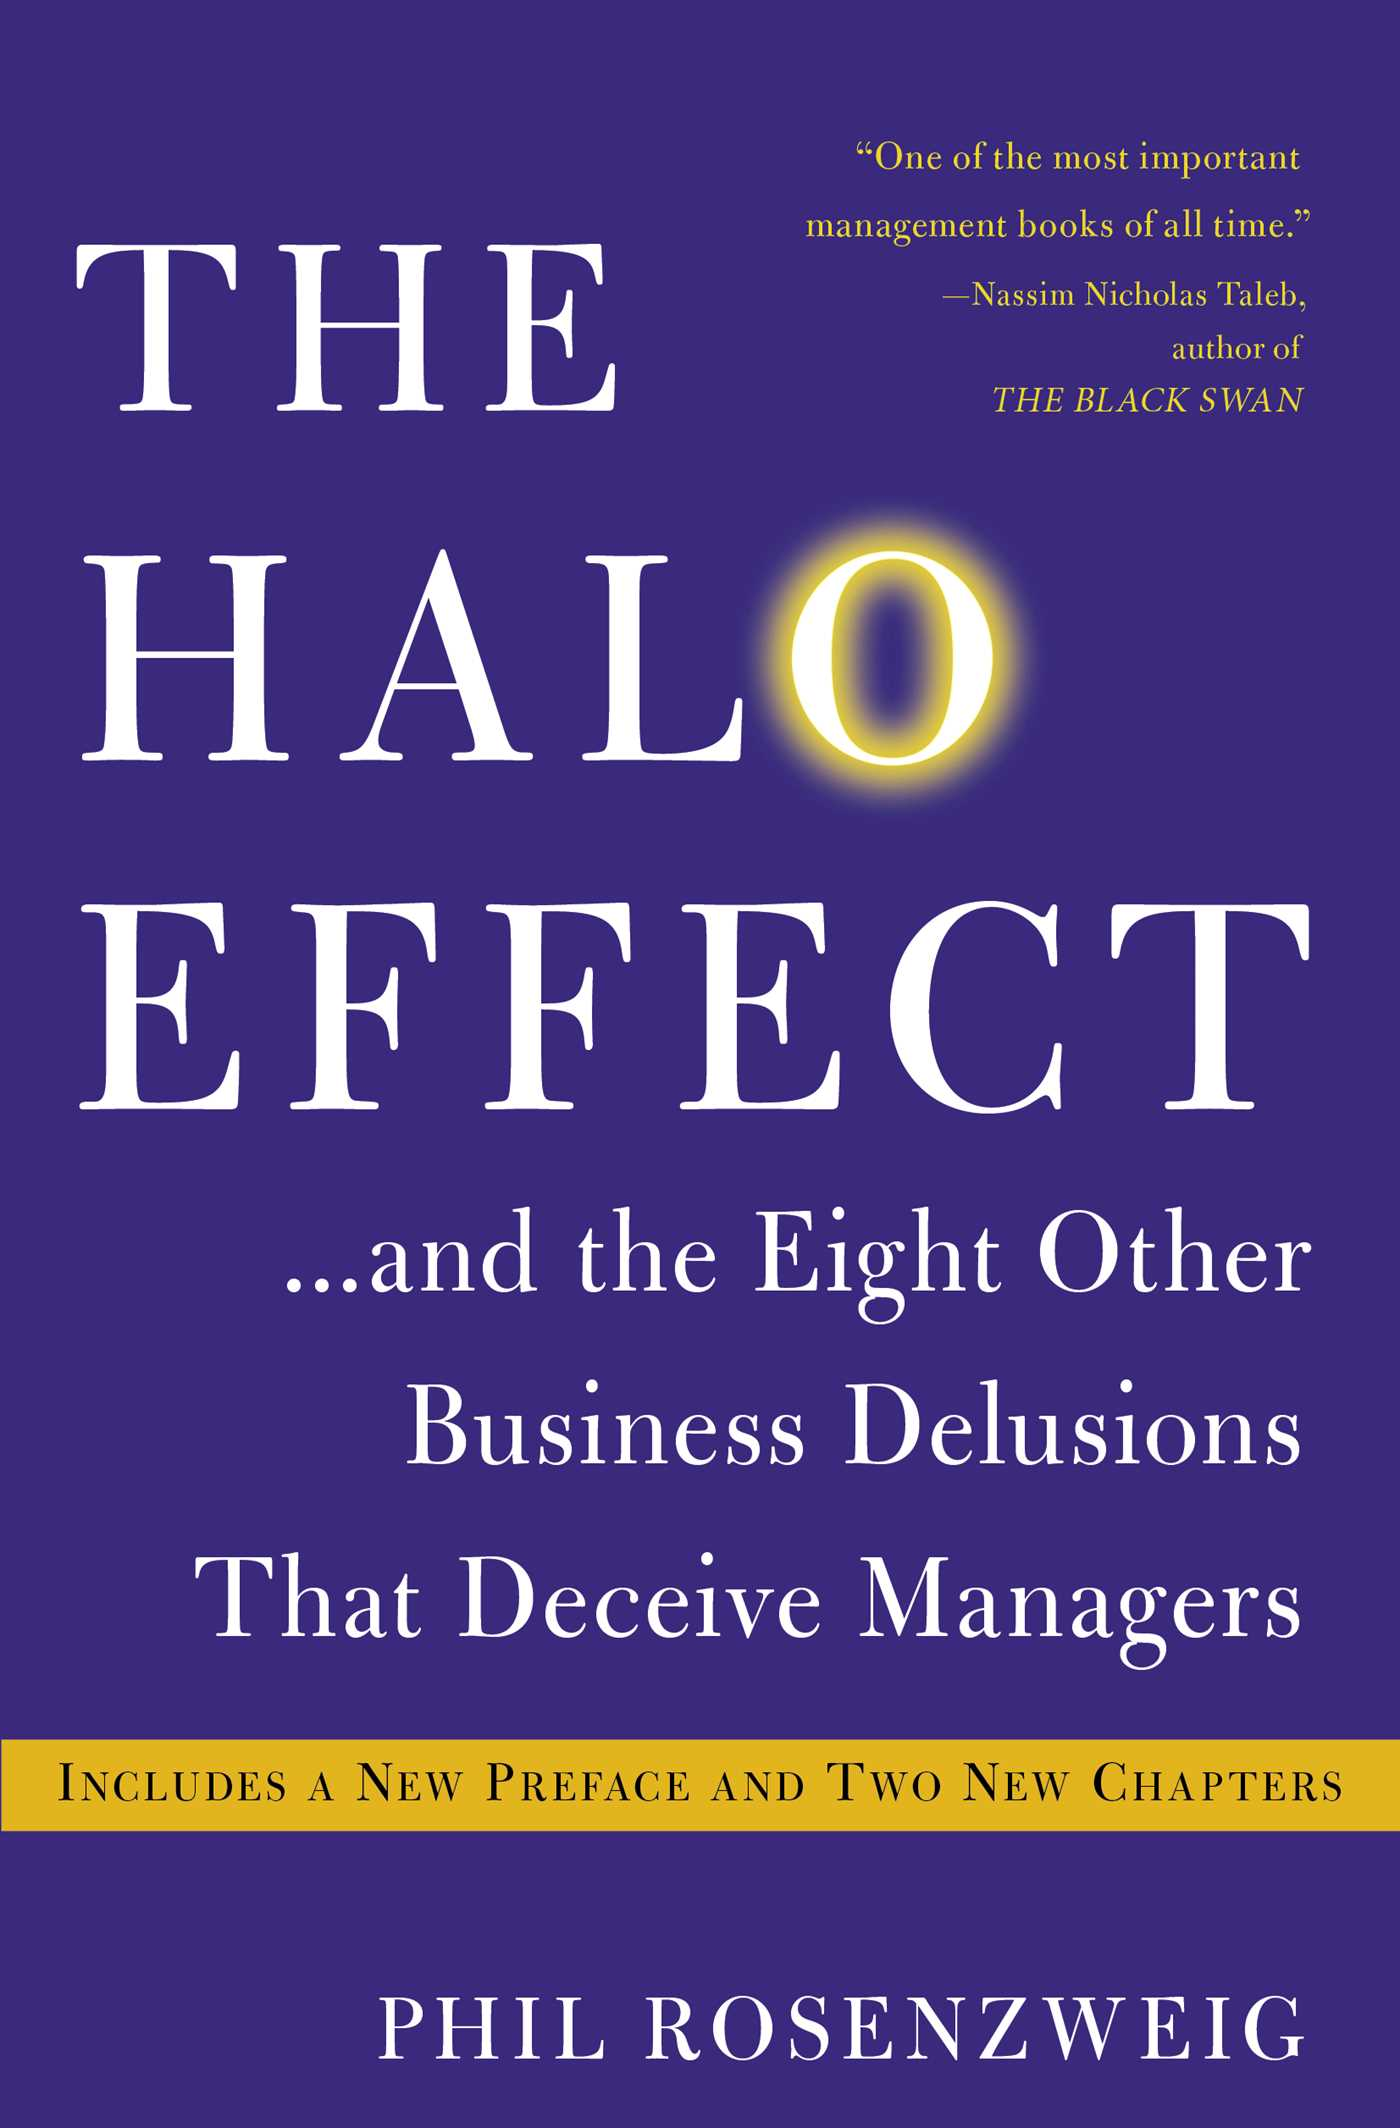 Halo-effect-9781476784038_hr